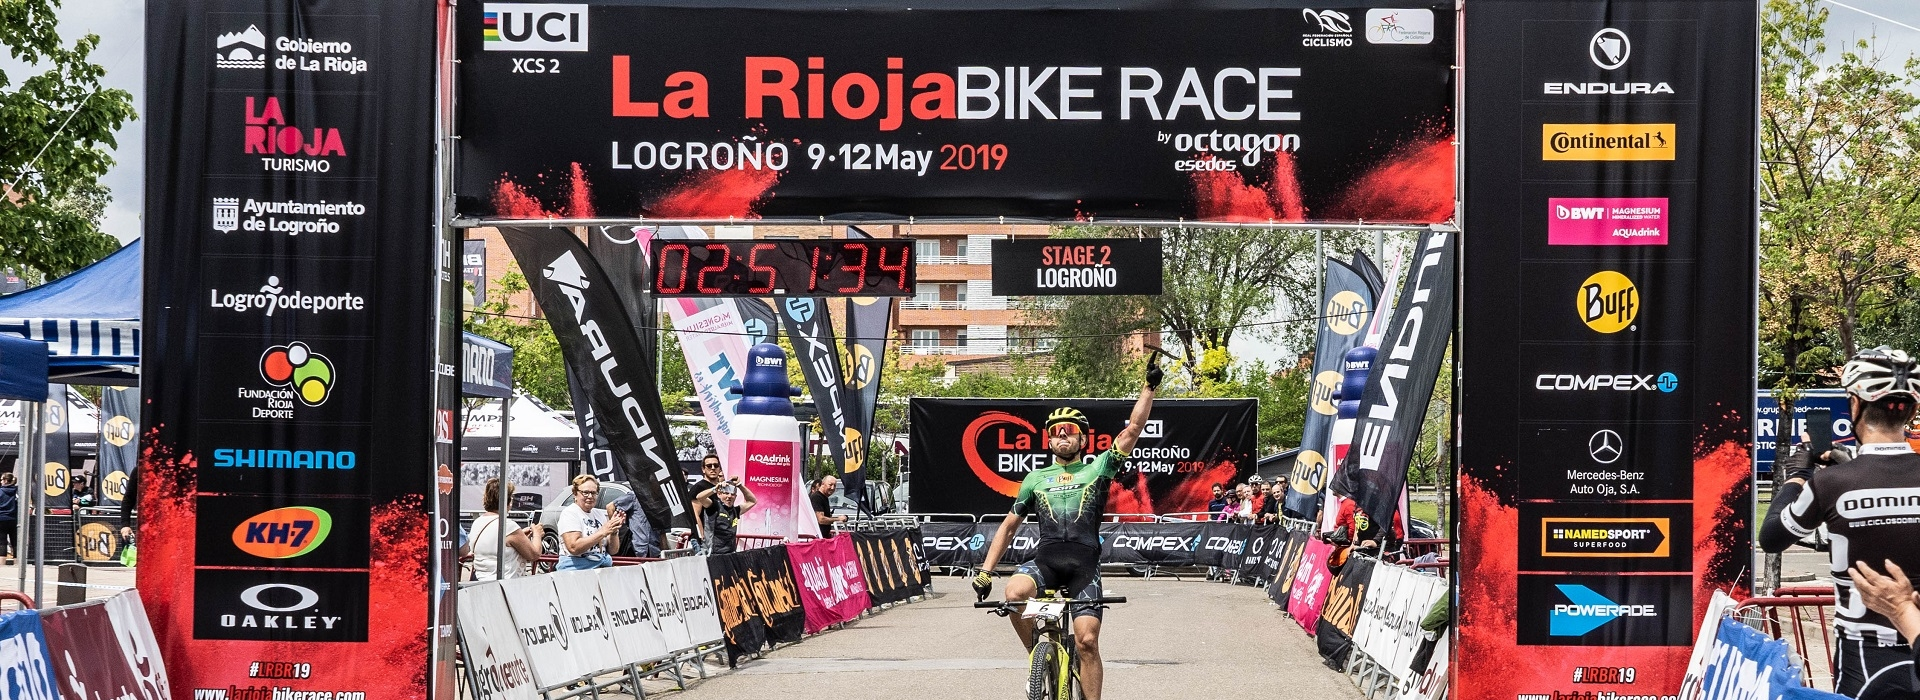 Sánchez seizes the leader's jersey; García continues her reign over the region